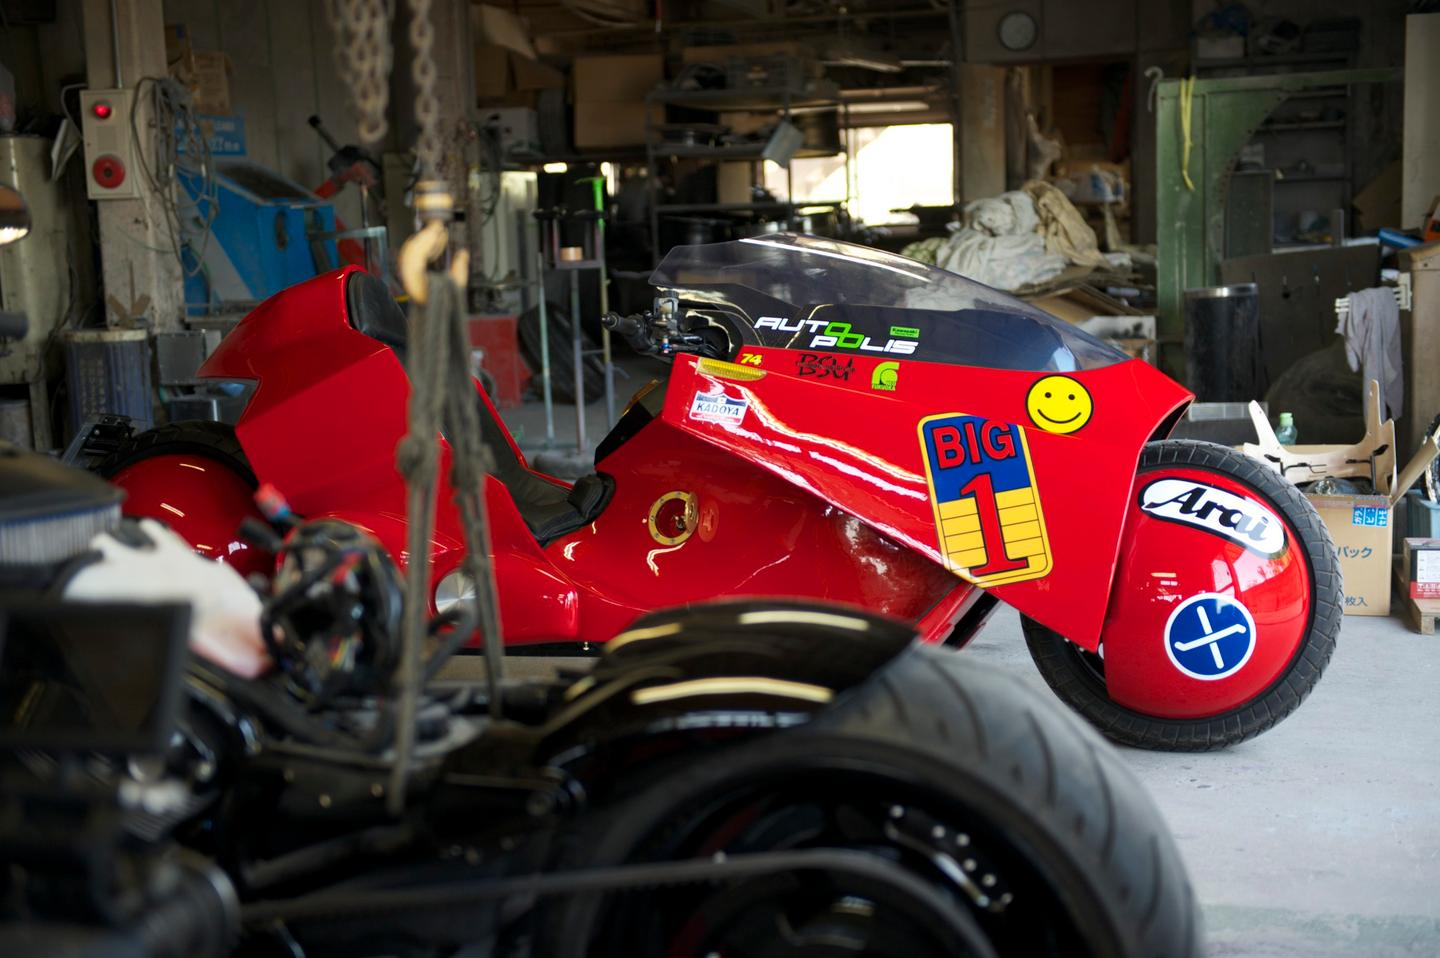 Recently the bike set out on a tour of Japan, starting at Tejima's own Showa Studio auto shop in Fukuoka